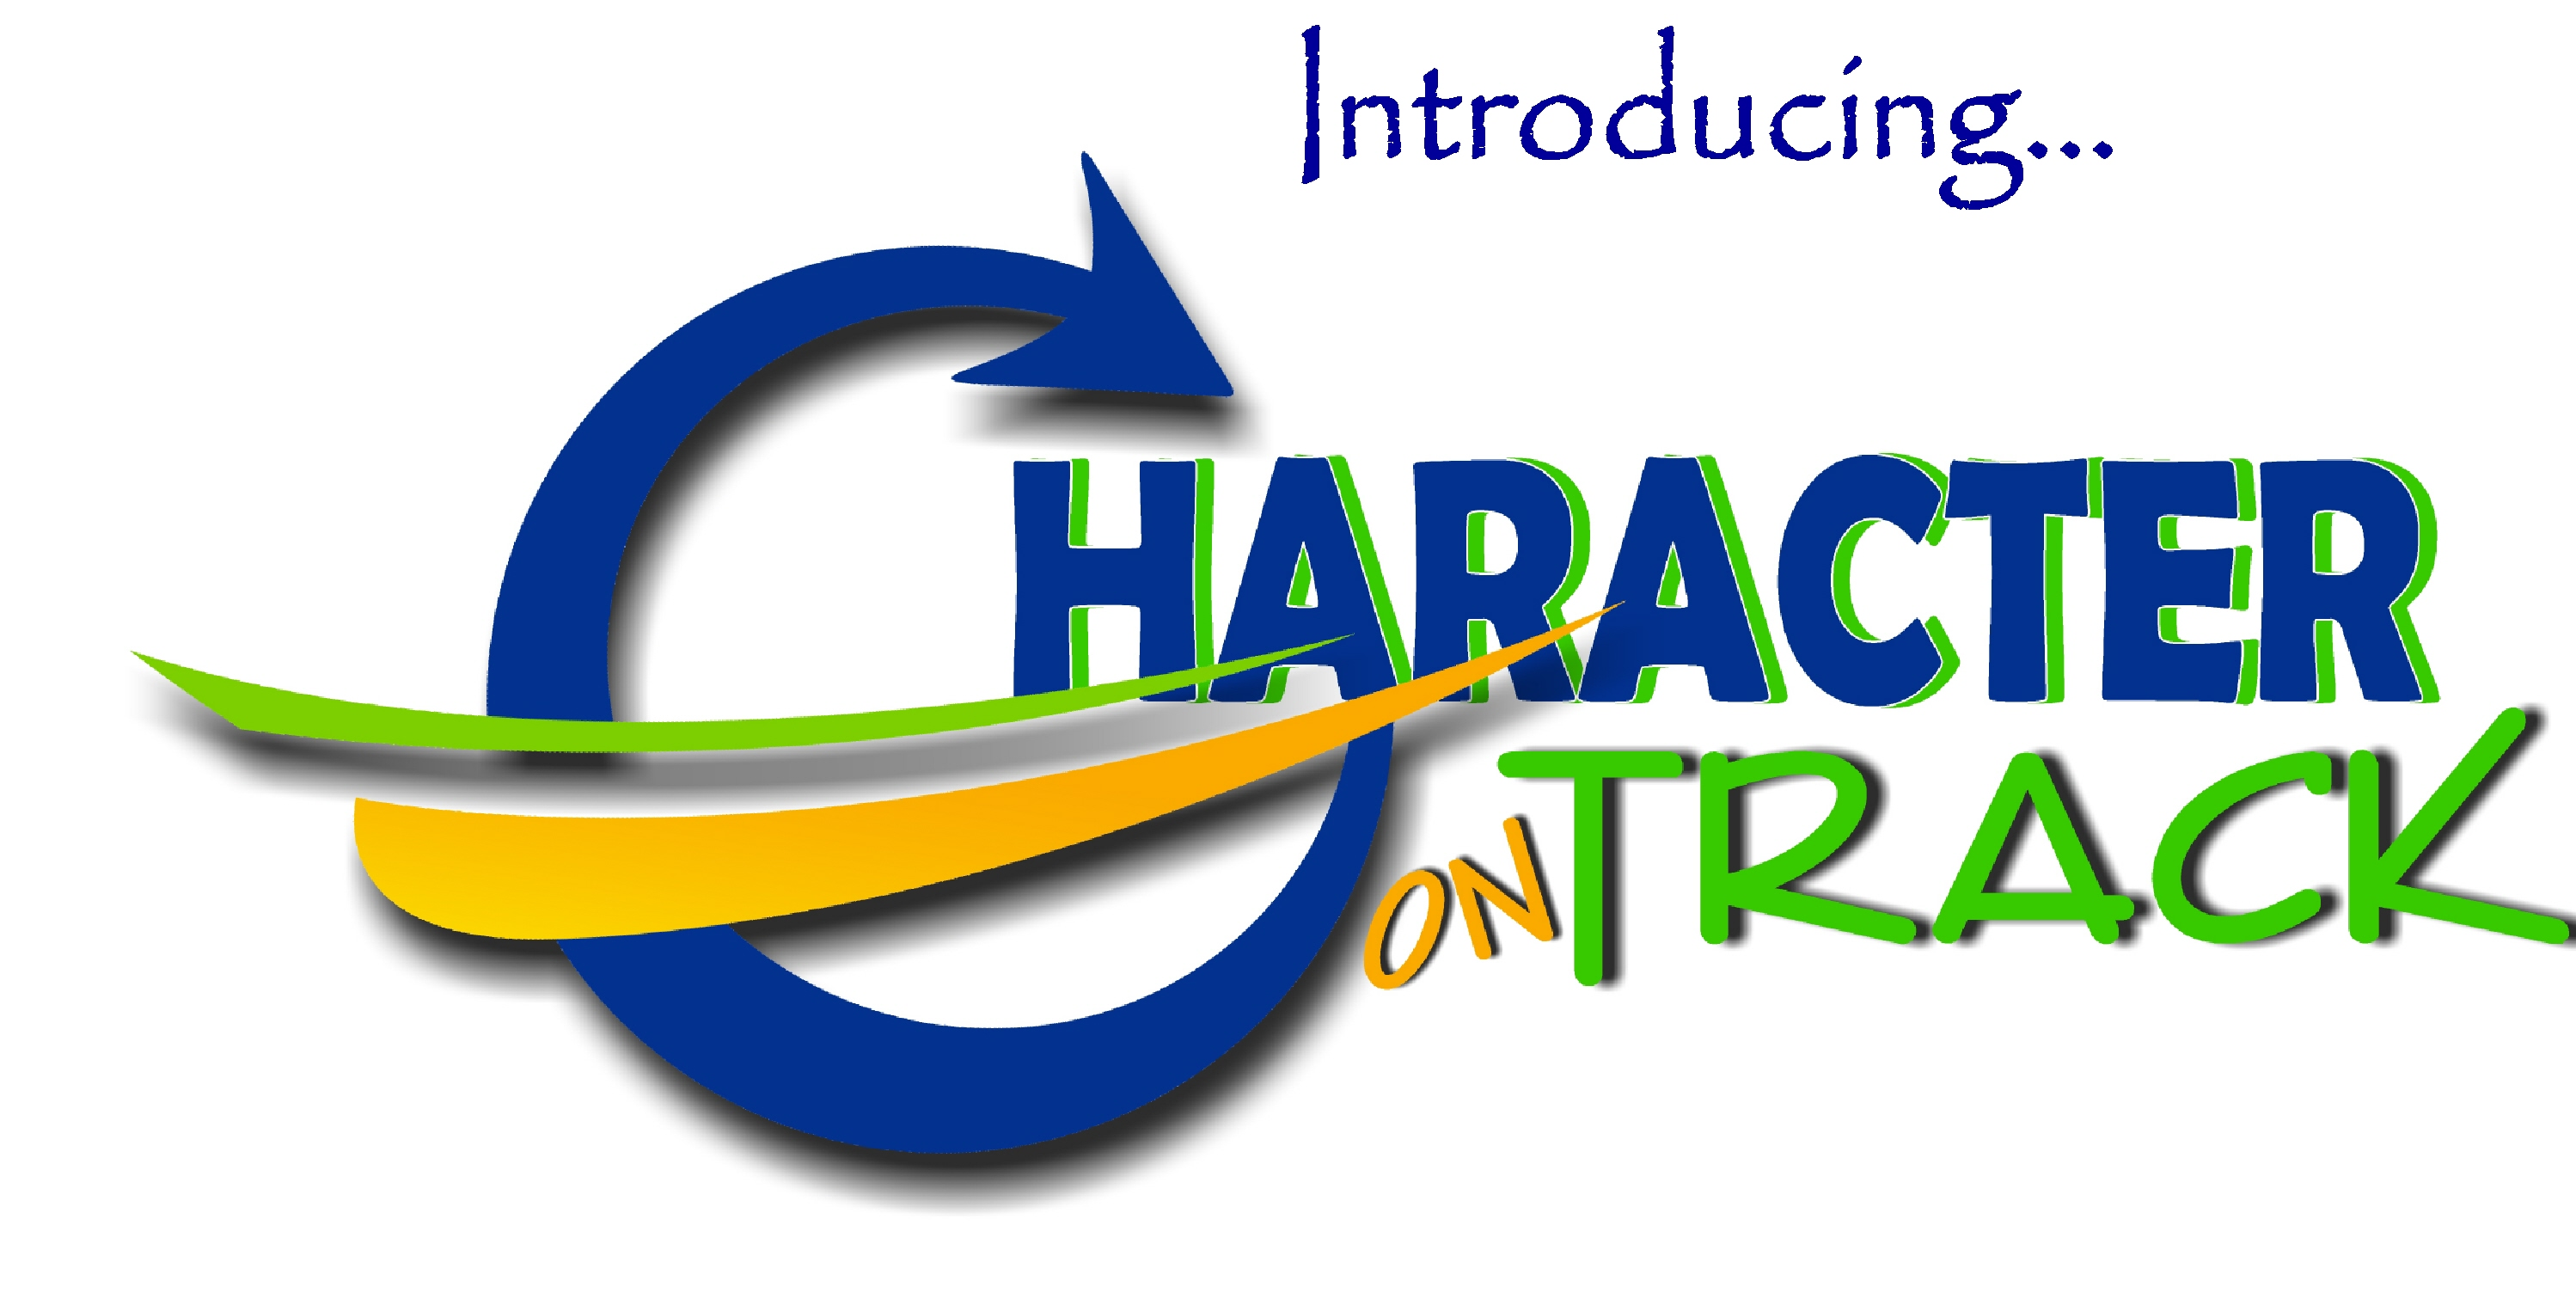 Introducing Character on Track2